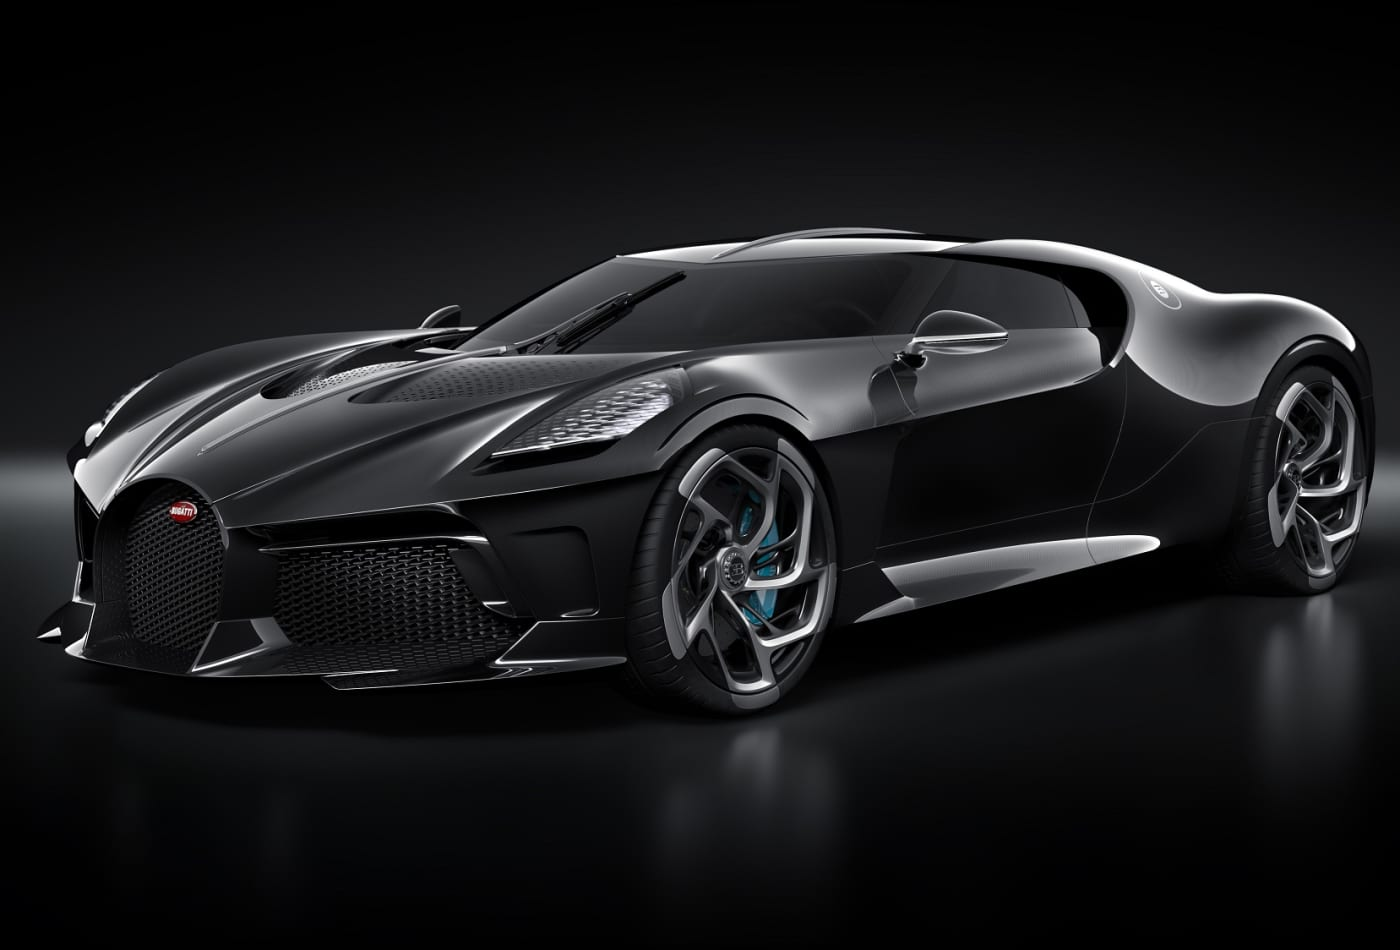 Take a look: Bugatti's La Voiture Noire car just sold for $19 million